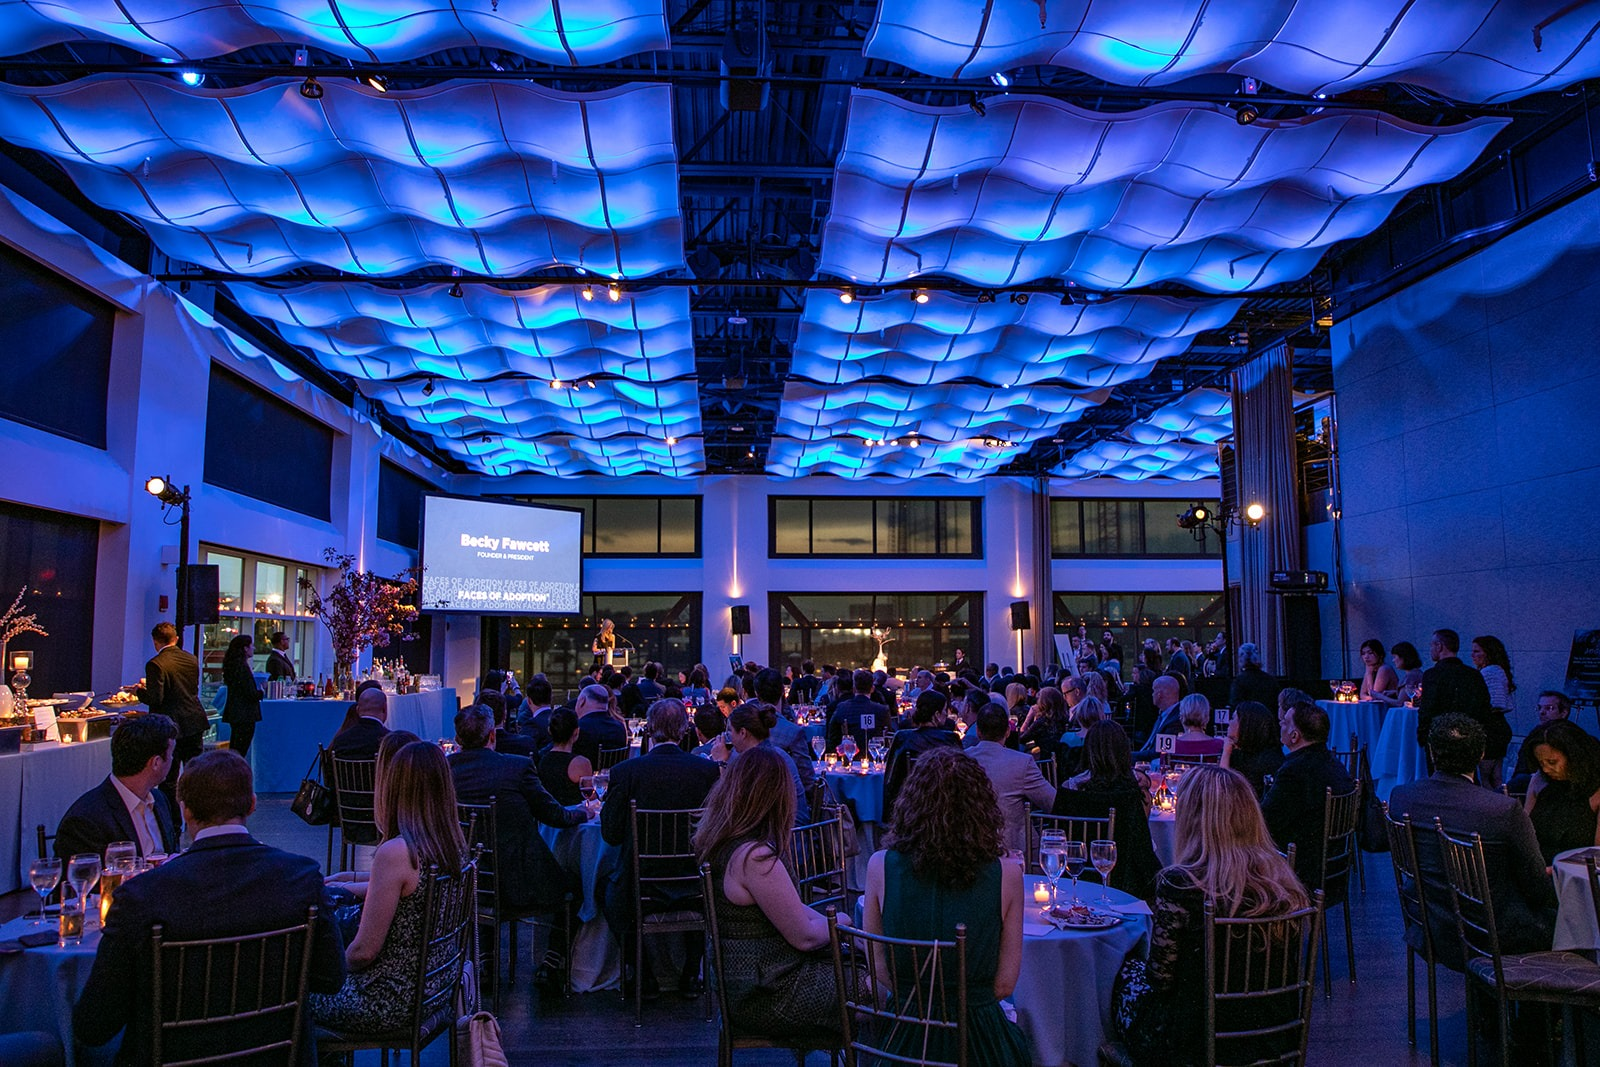 Current in Blue LED ceiling lights with guests seated at tables